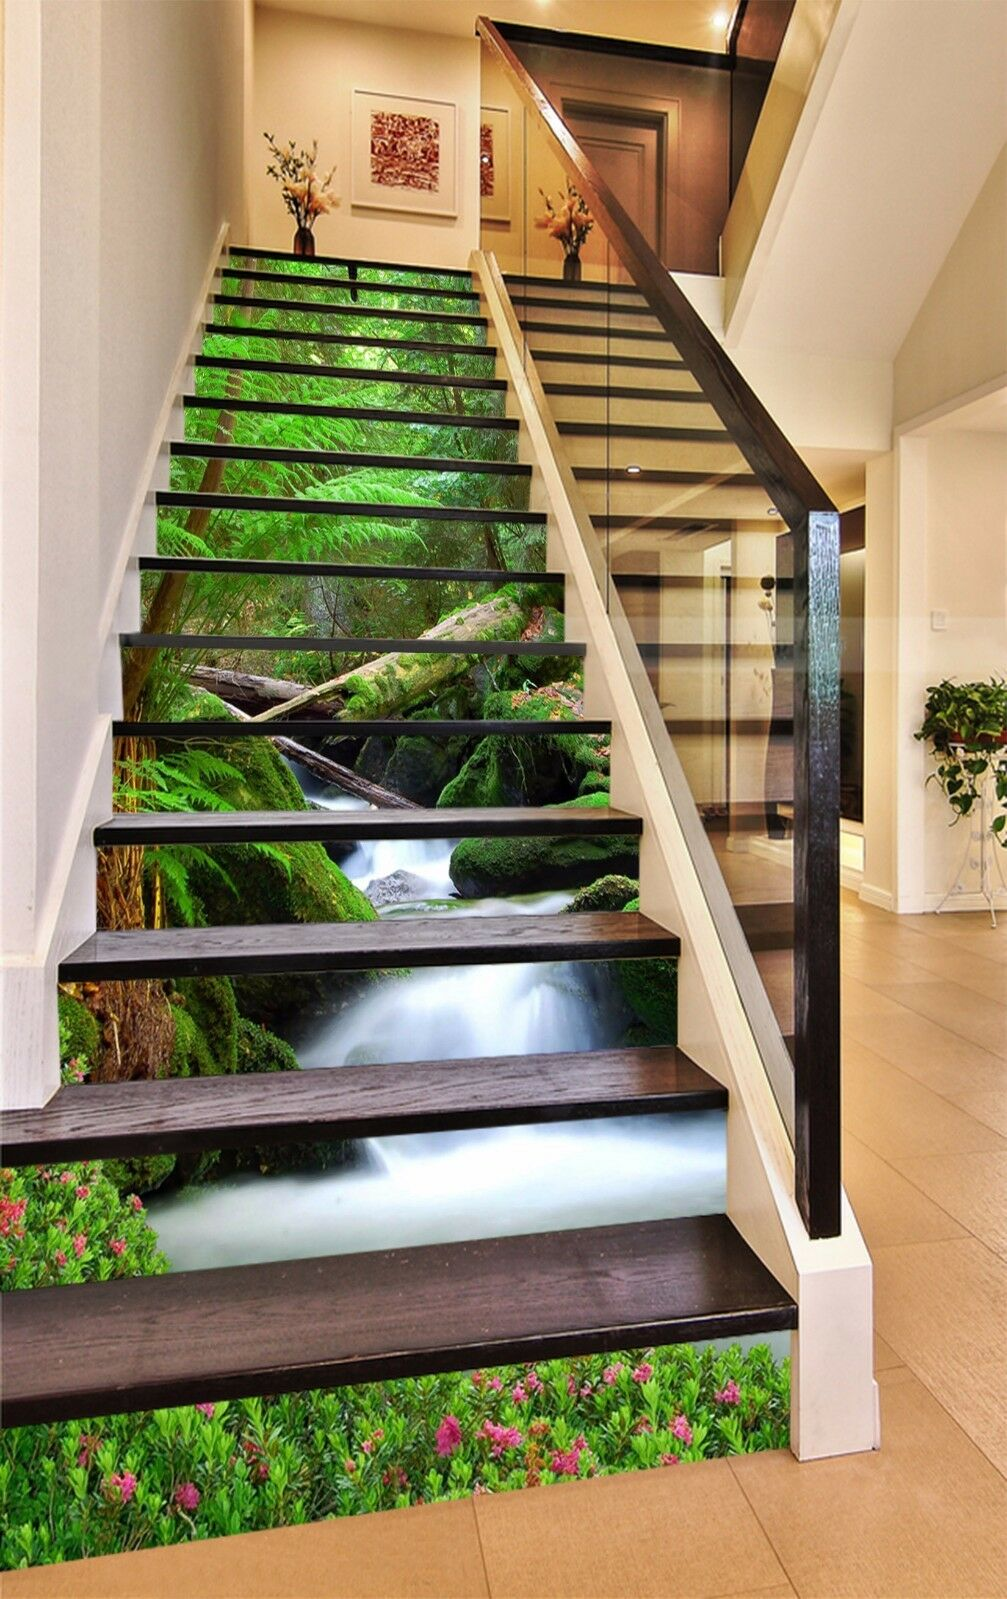 3D Green Trees 7025 Stair Risers Decoration Photo Mural Vinyl Decal Wallpaper AU